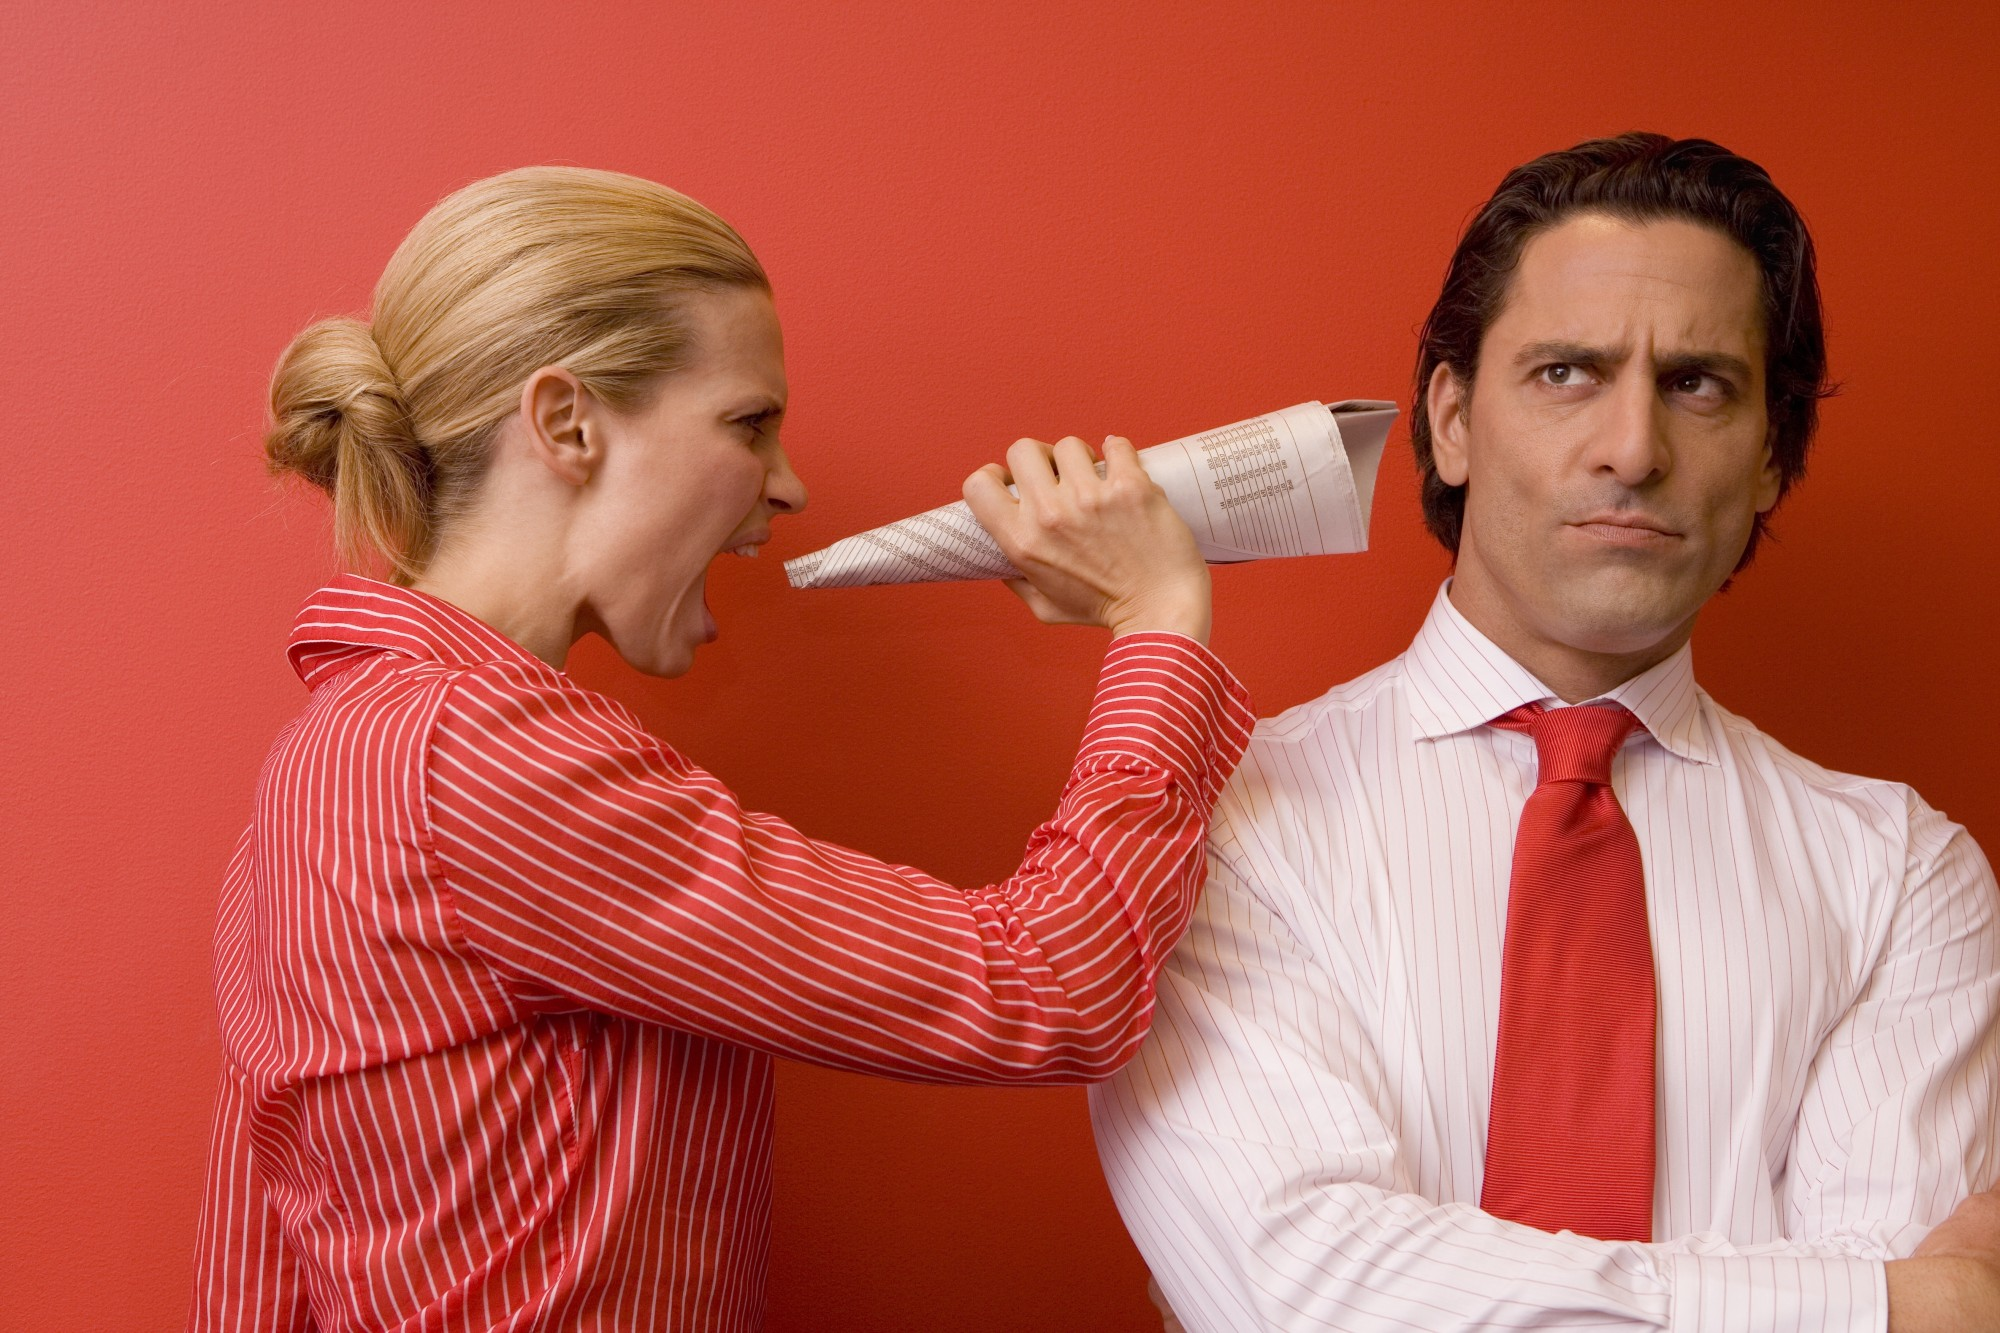 The 9 Most Annoying Coworkers And How To Deal With Them